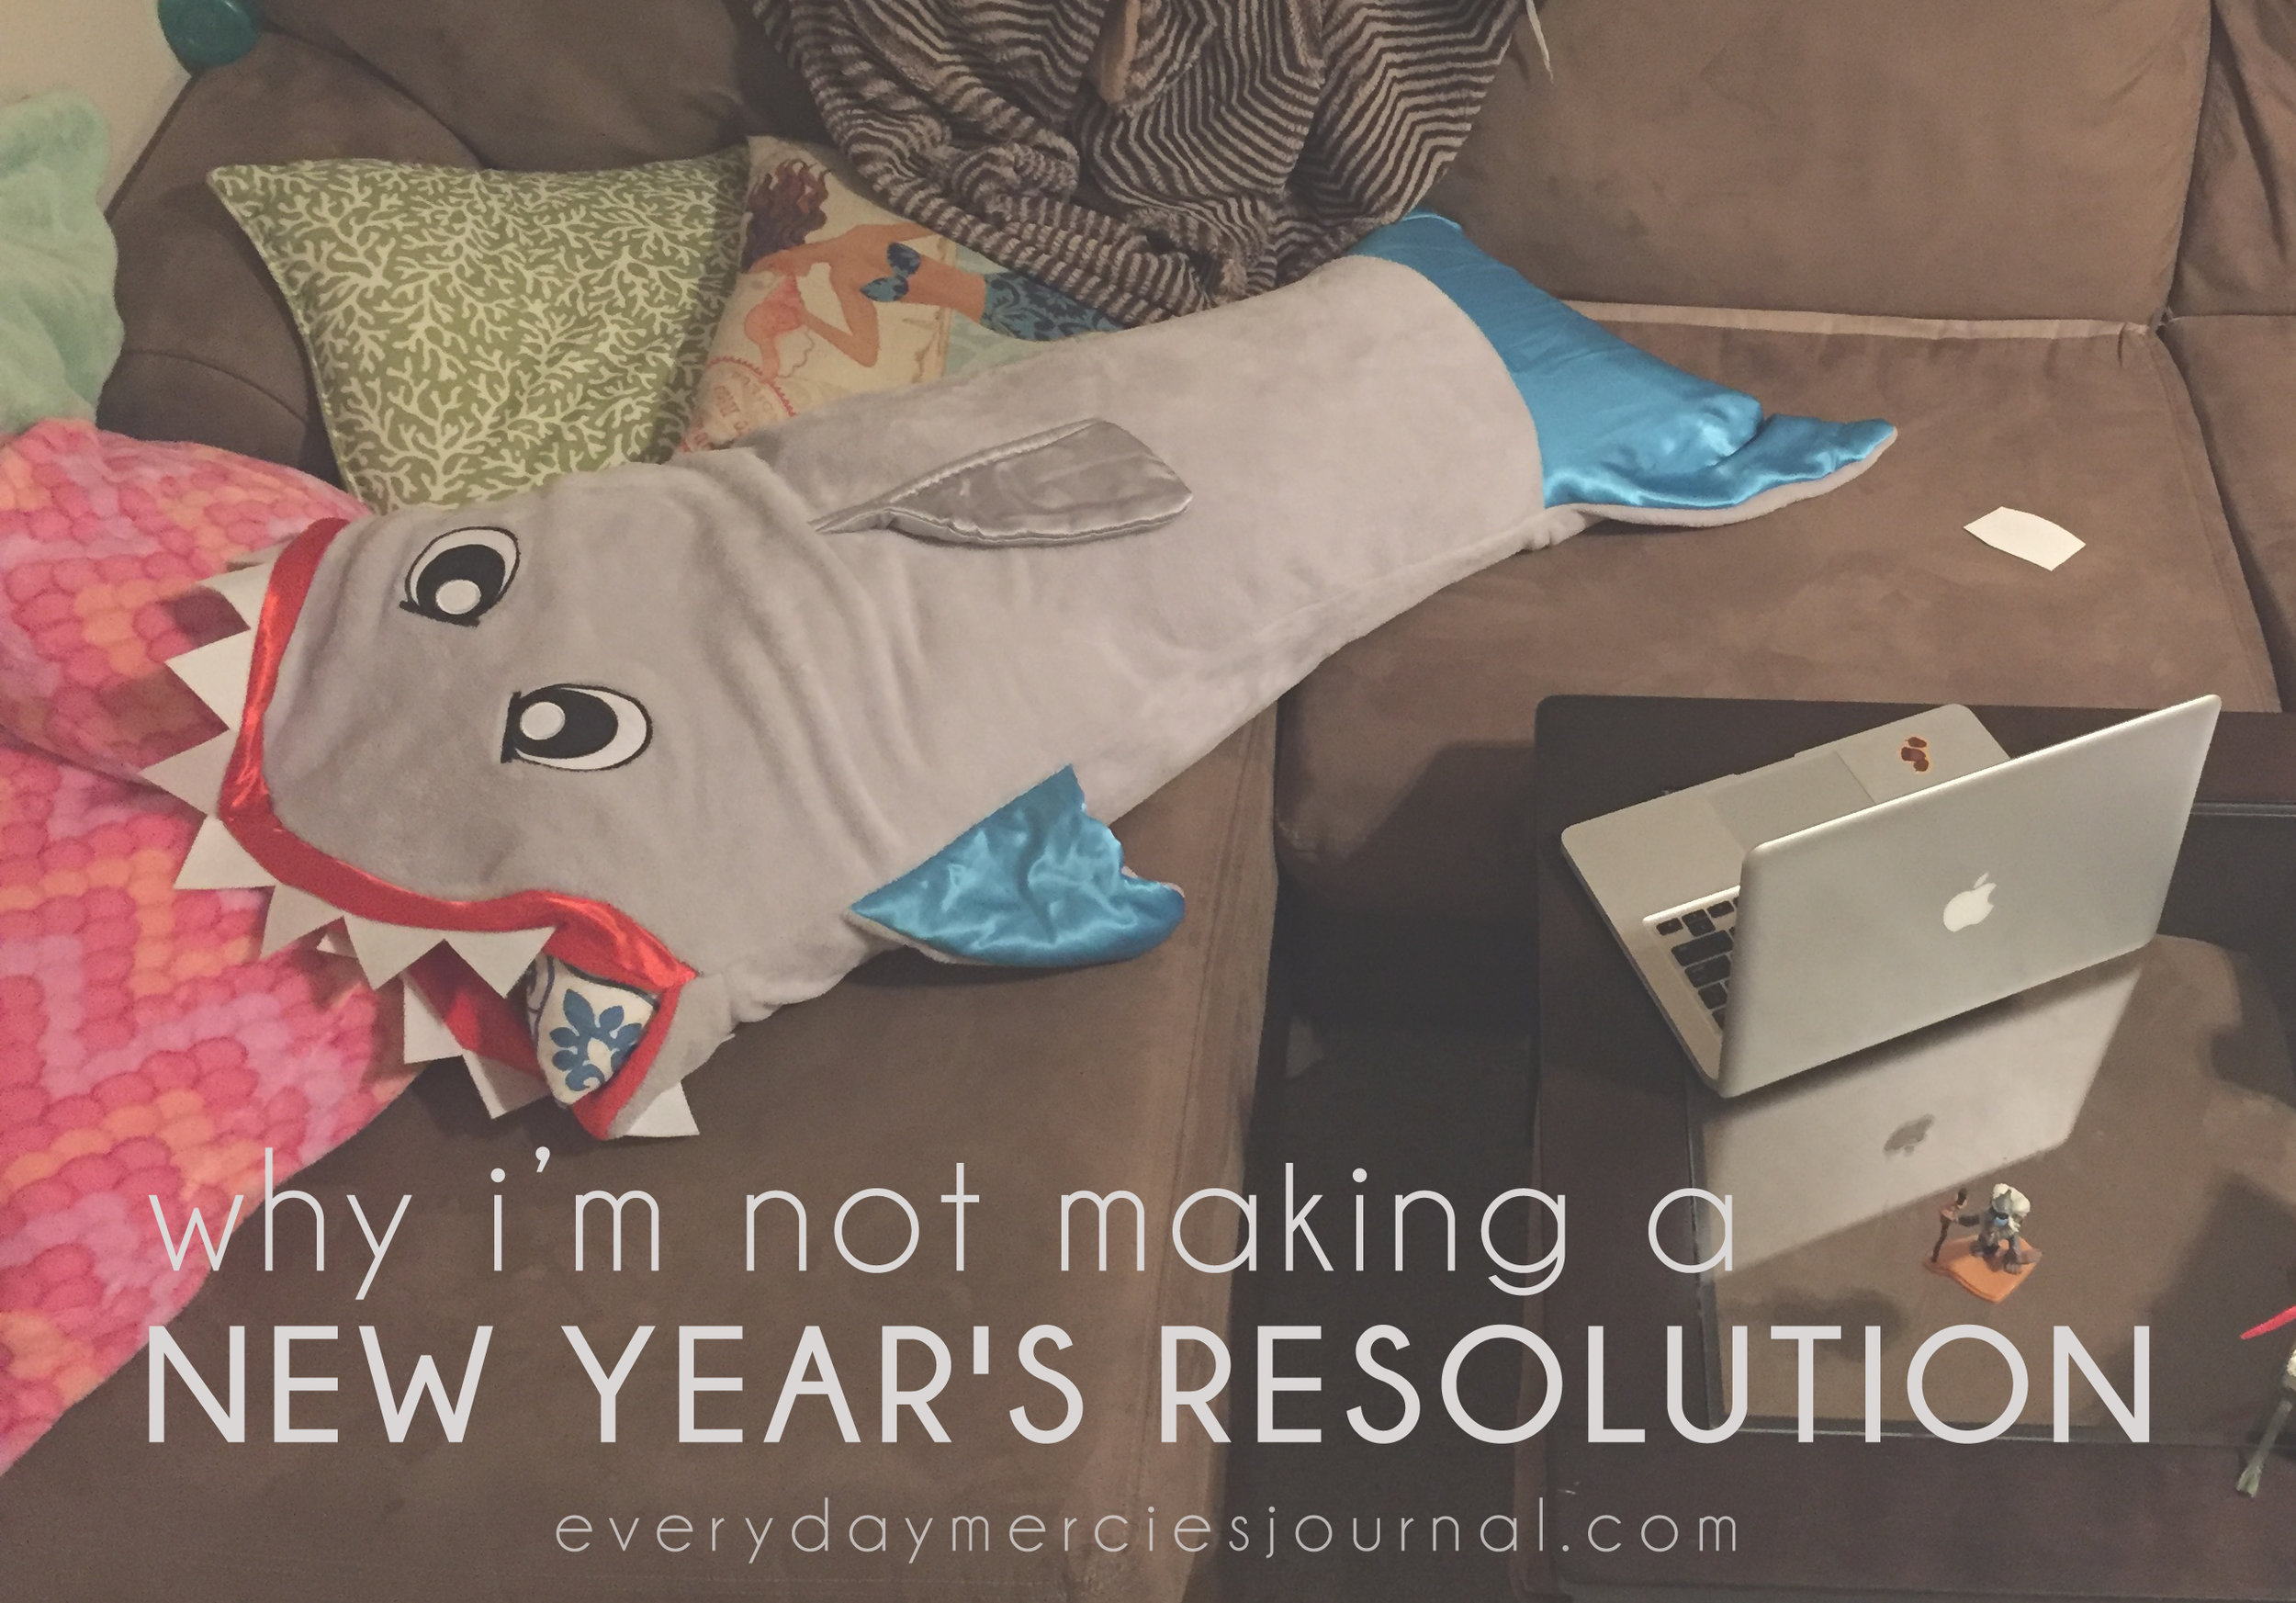 newyearsresolution.jpg